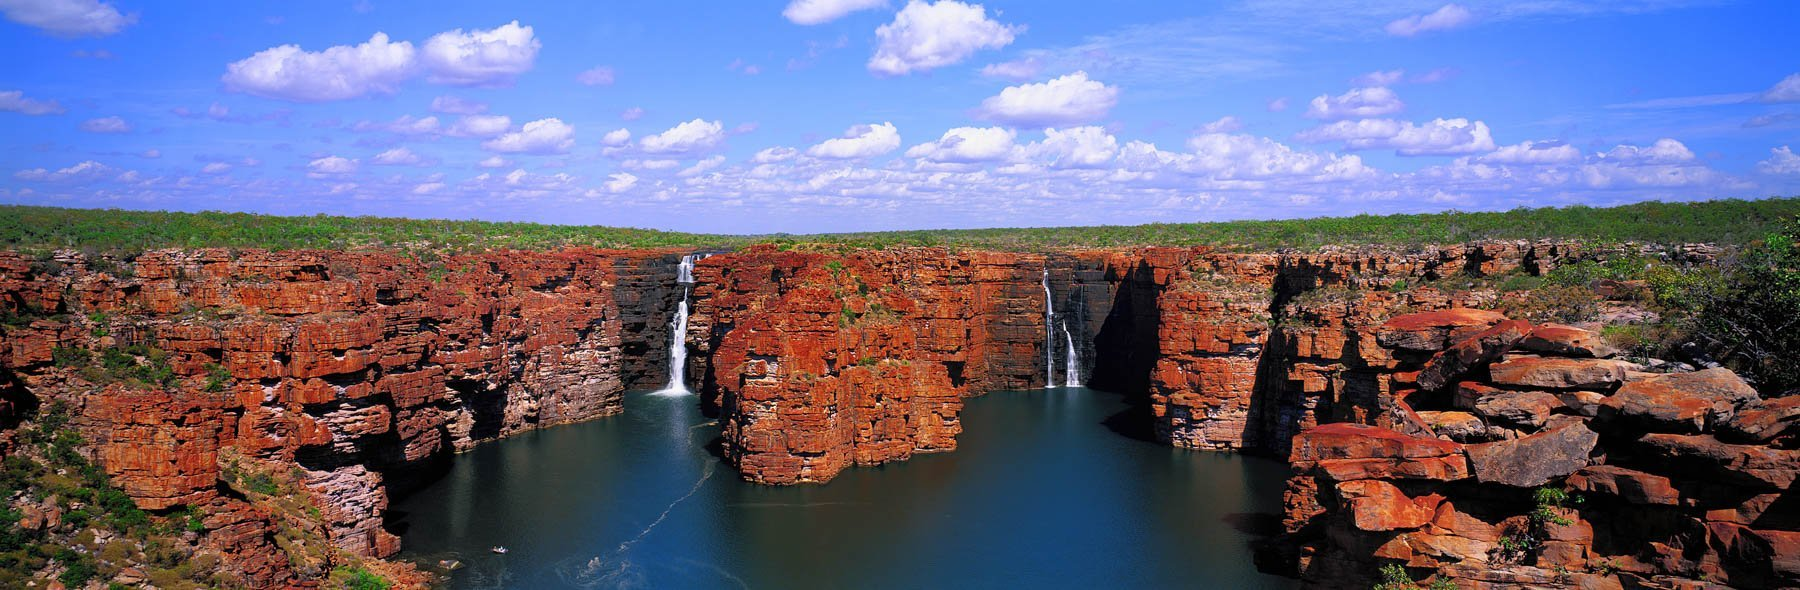 The majestic twin waterfalls of King George falls, Kimberleys, WA, Australia.